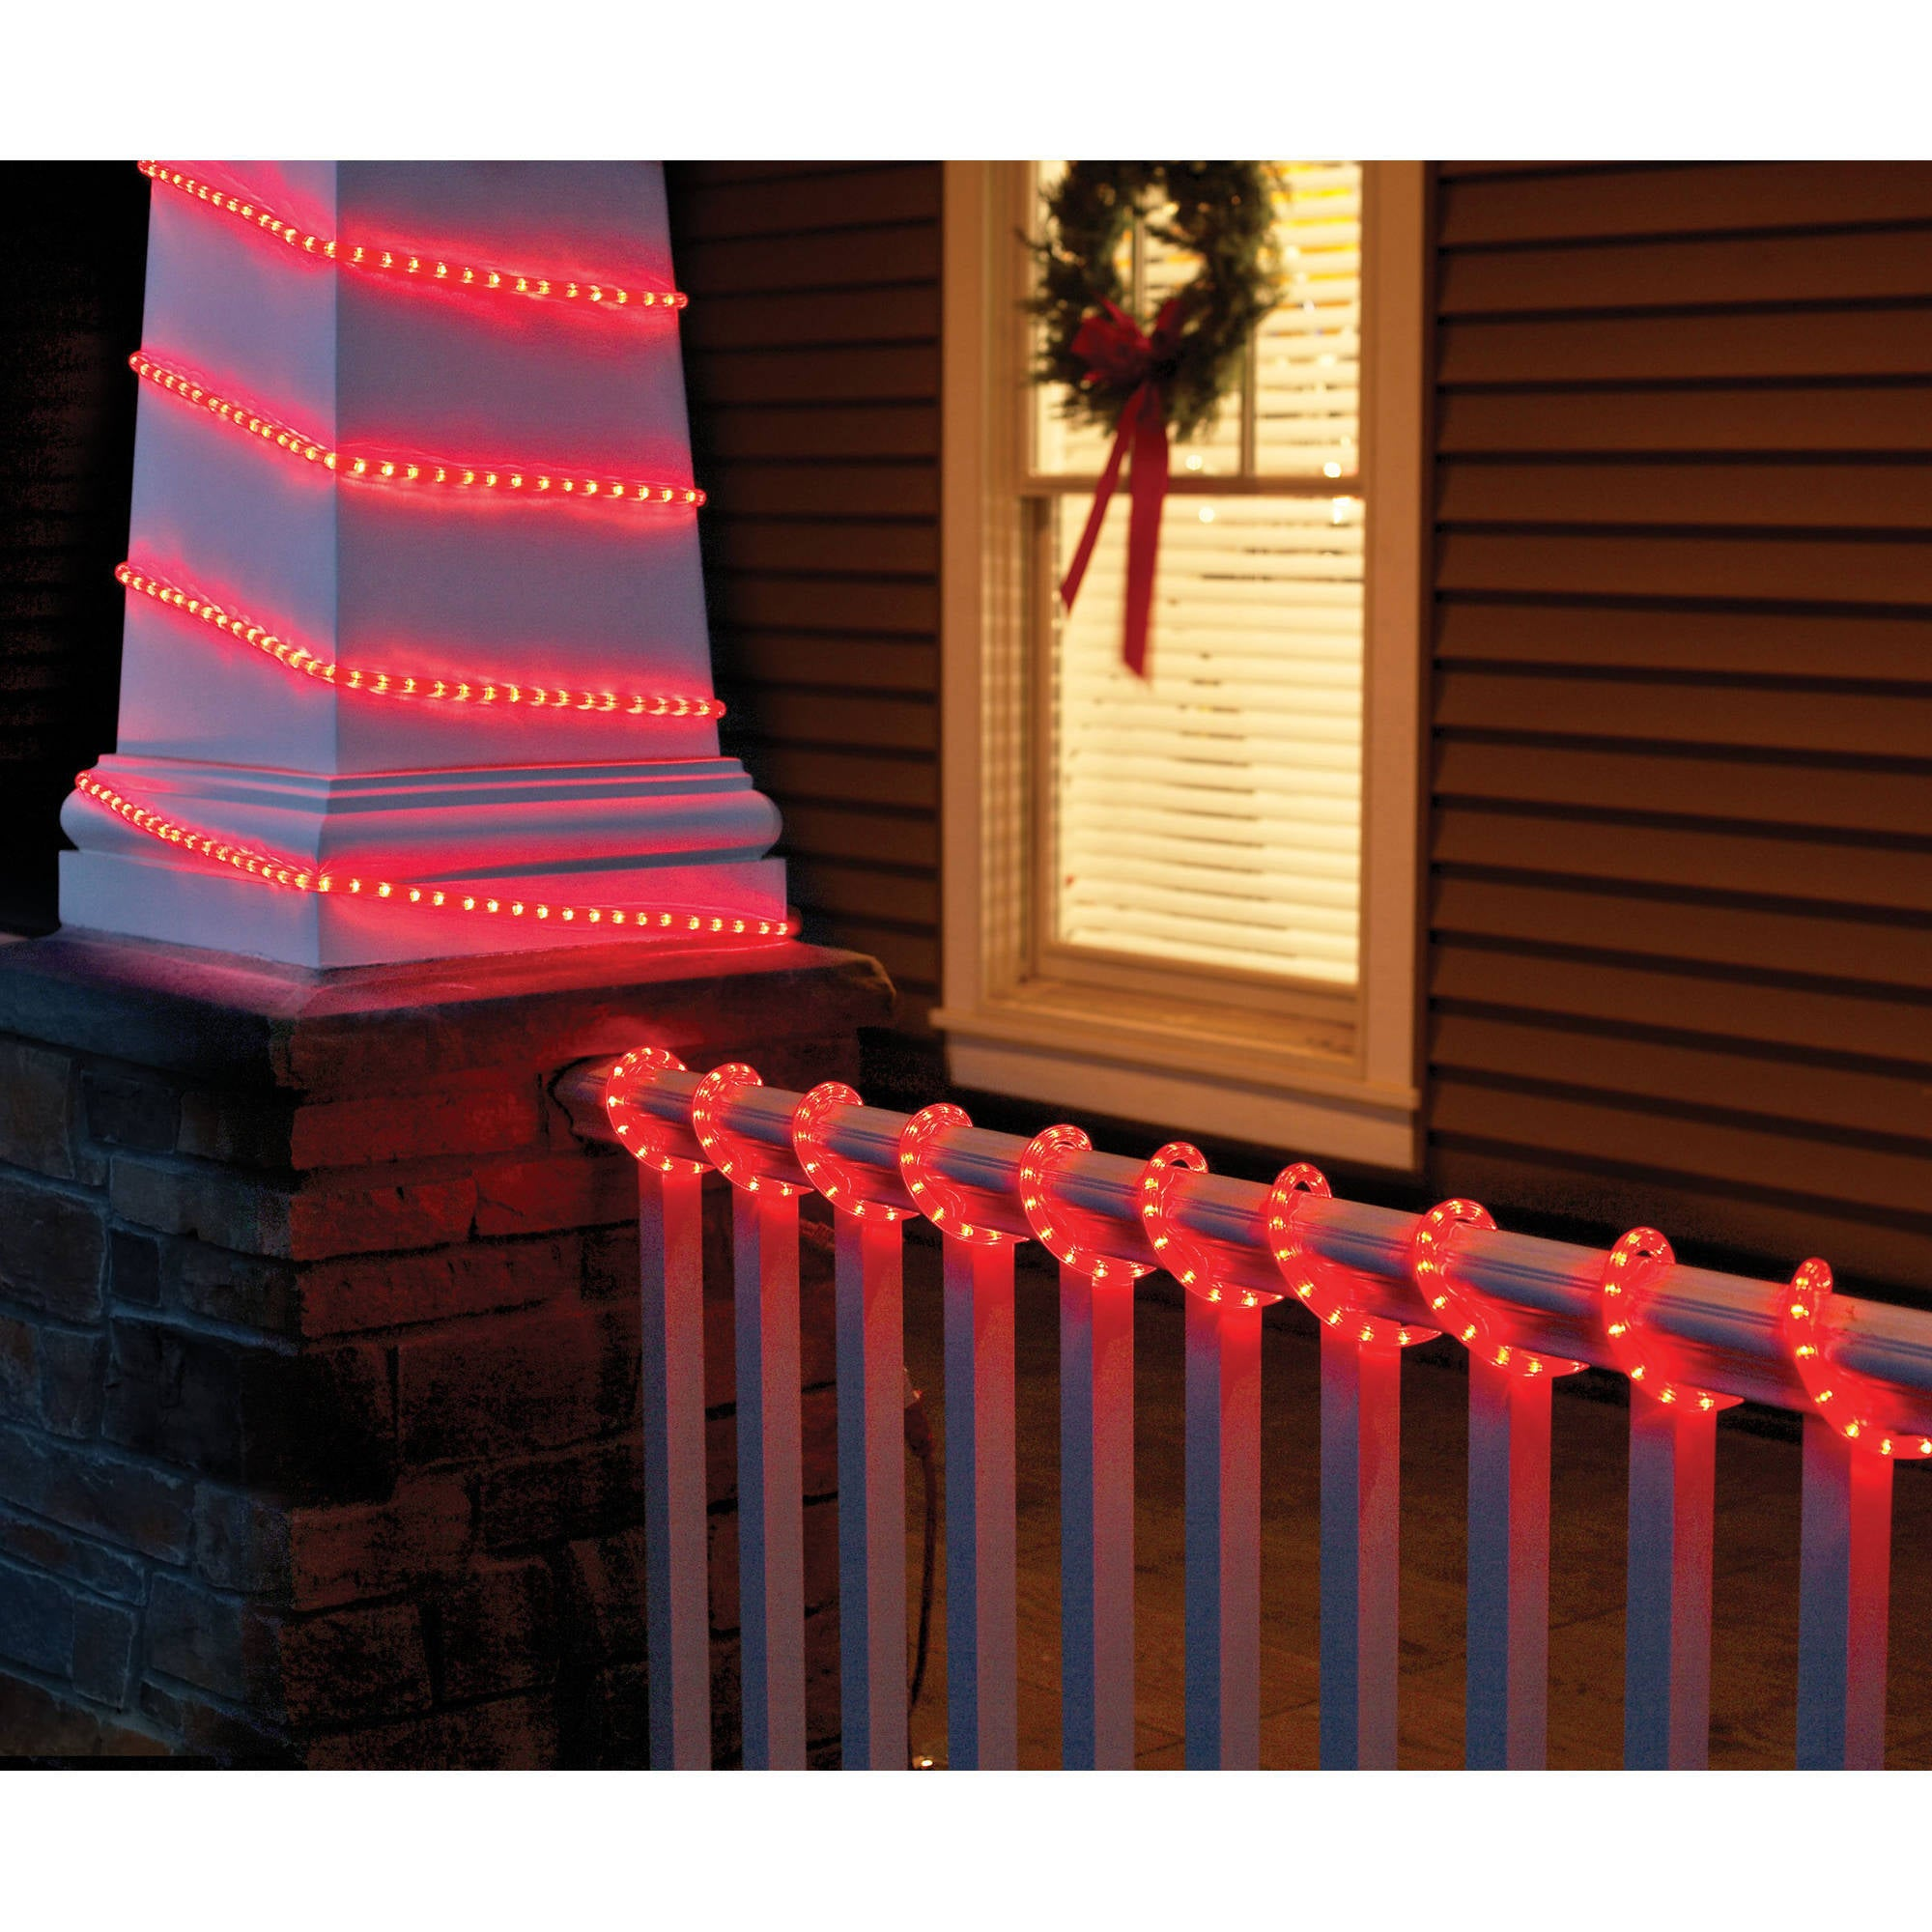 Holiday Time Christmas Lights.Holiday Time Christmas Lights 18 Crystalized Rope Light Red